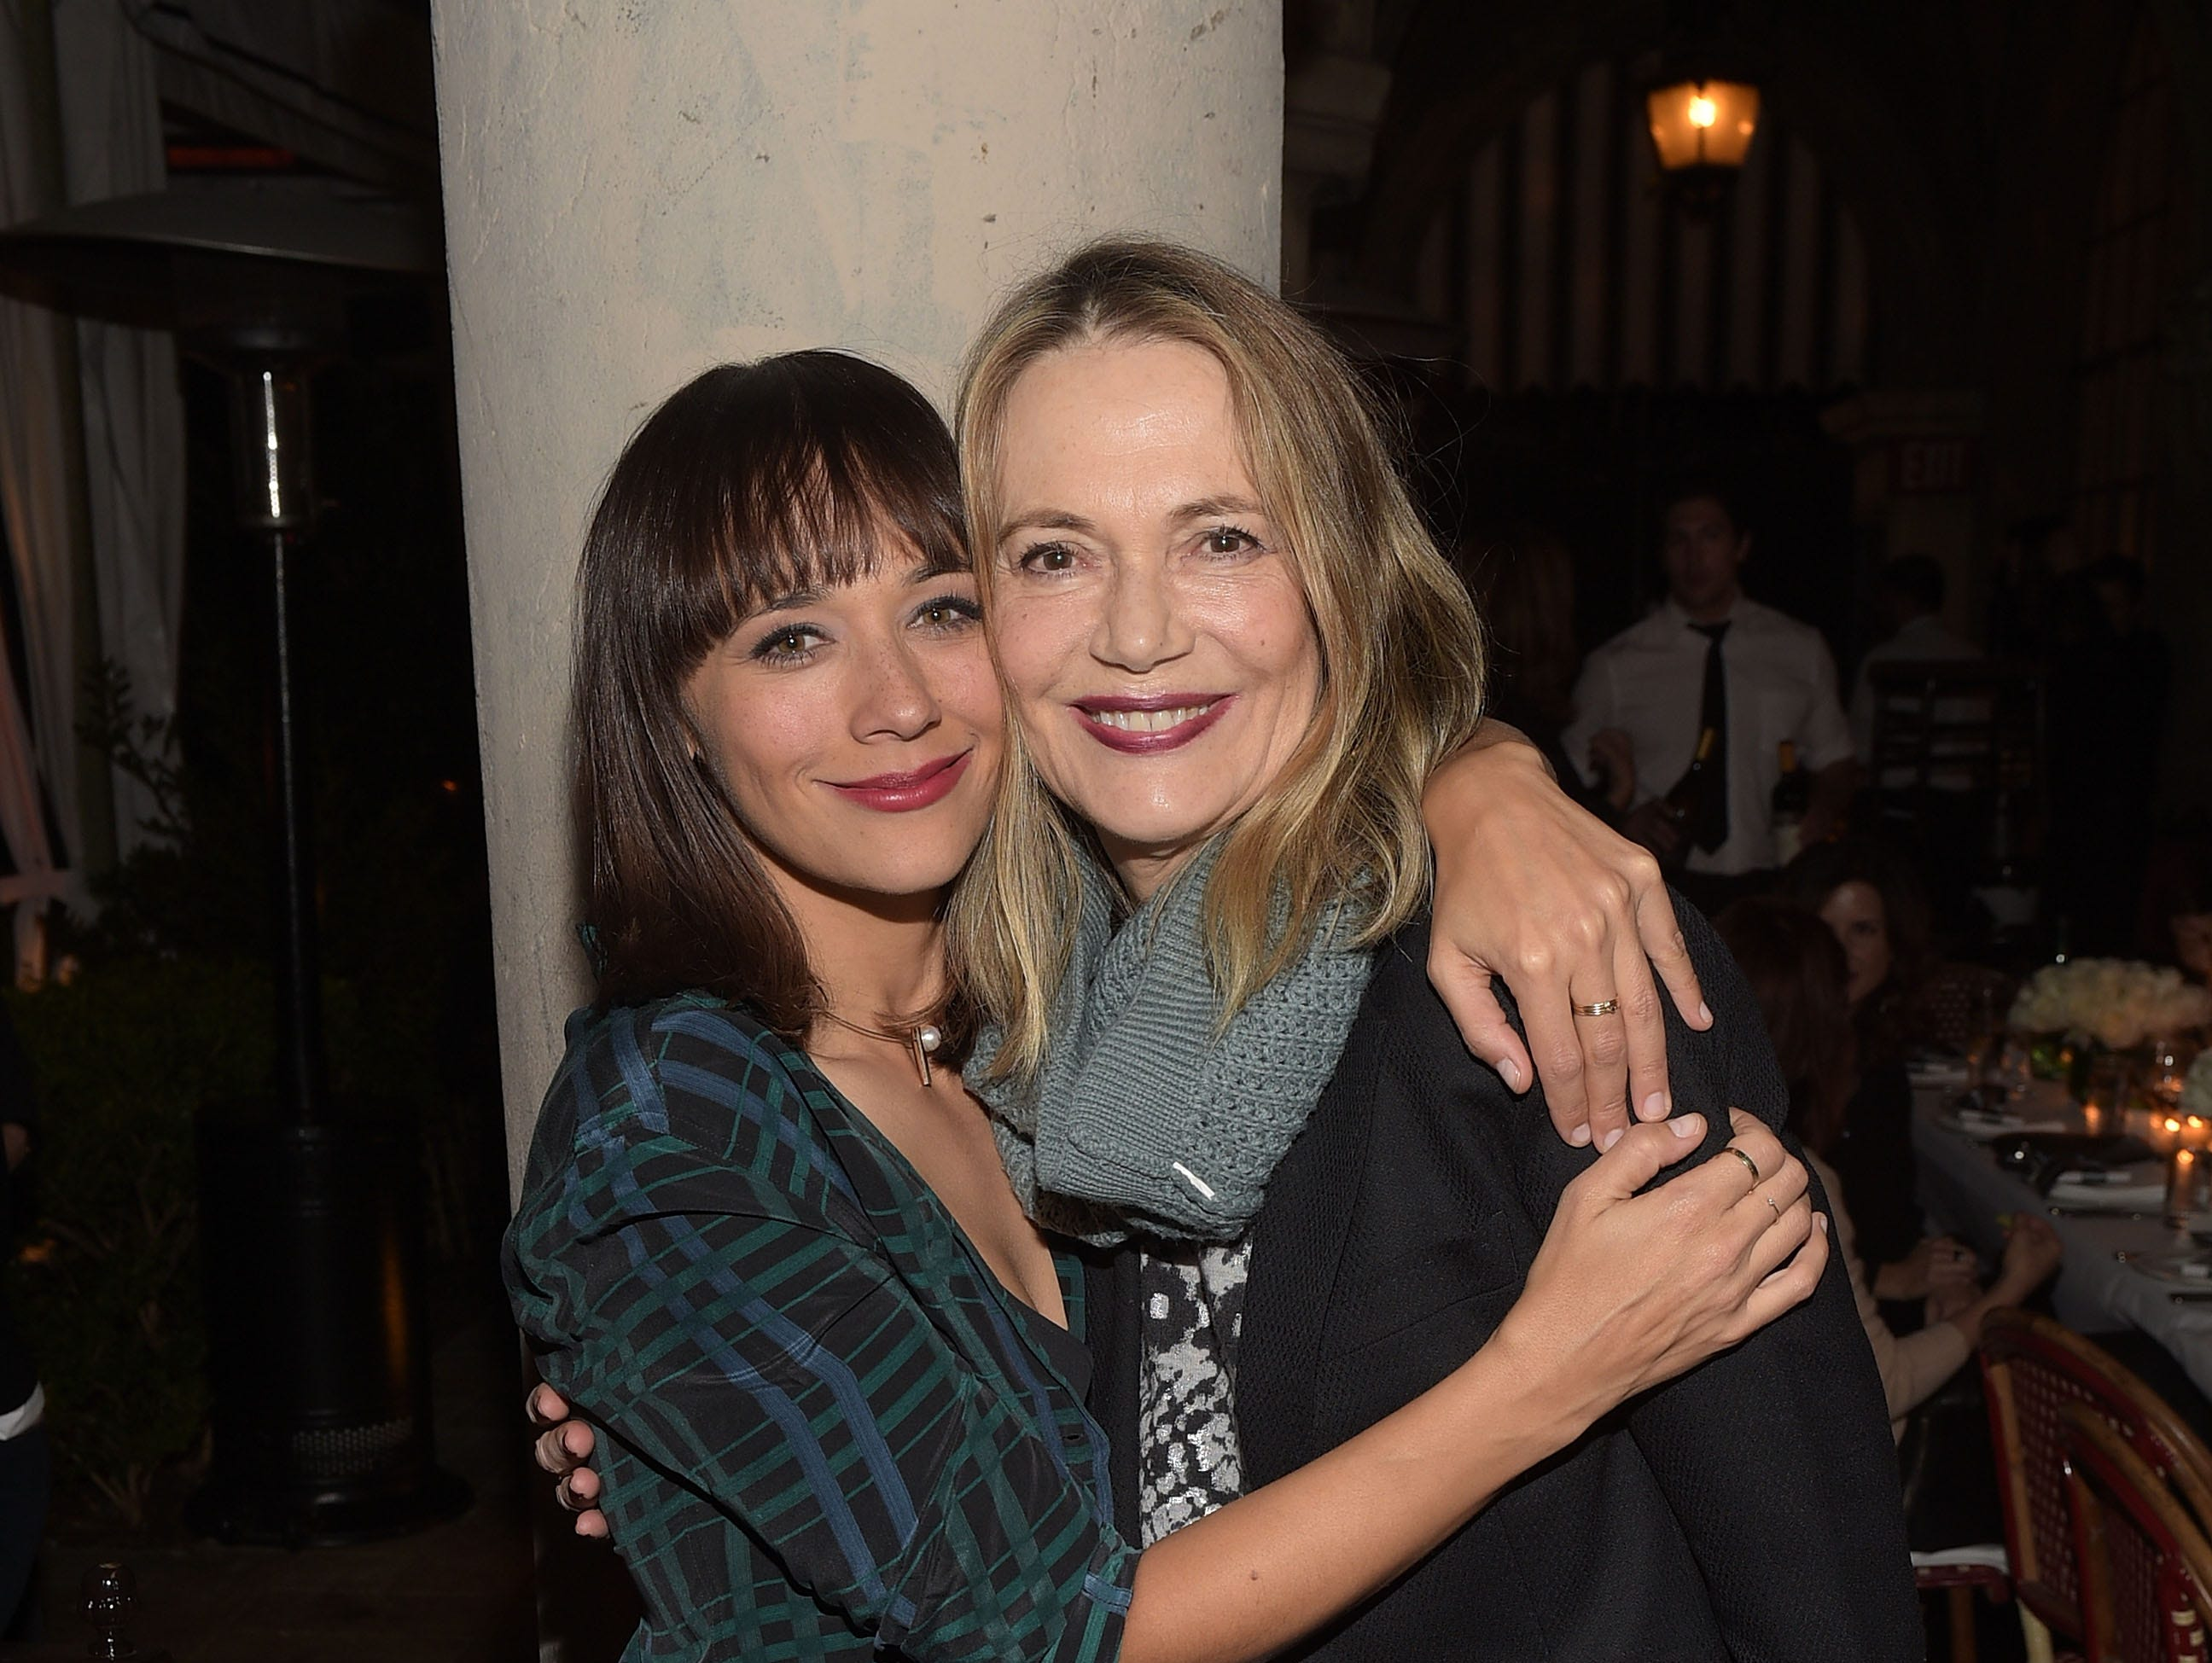 Rashida Jones (left) and Peggy Lipton attend the Equipment and Vanity Fair Dinner hosted by Rashida Jones and Krista Smith at Chateau Marmont on Dec. 8, 2015, in Los Angeles.